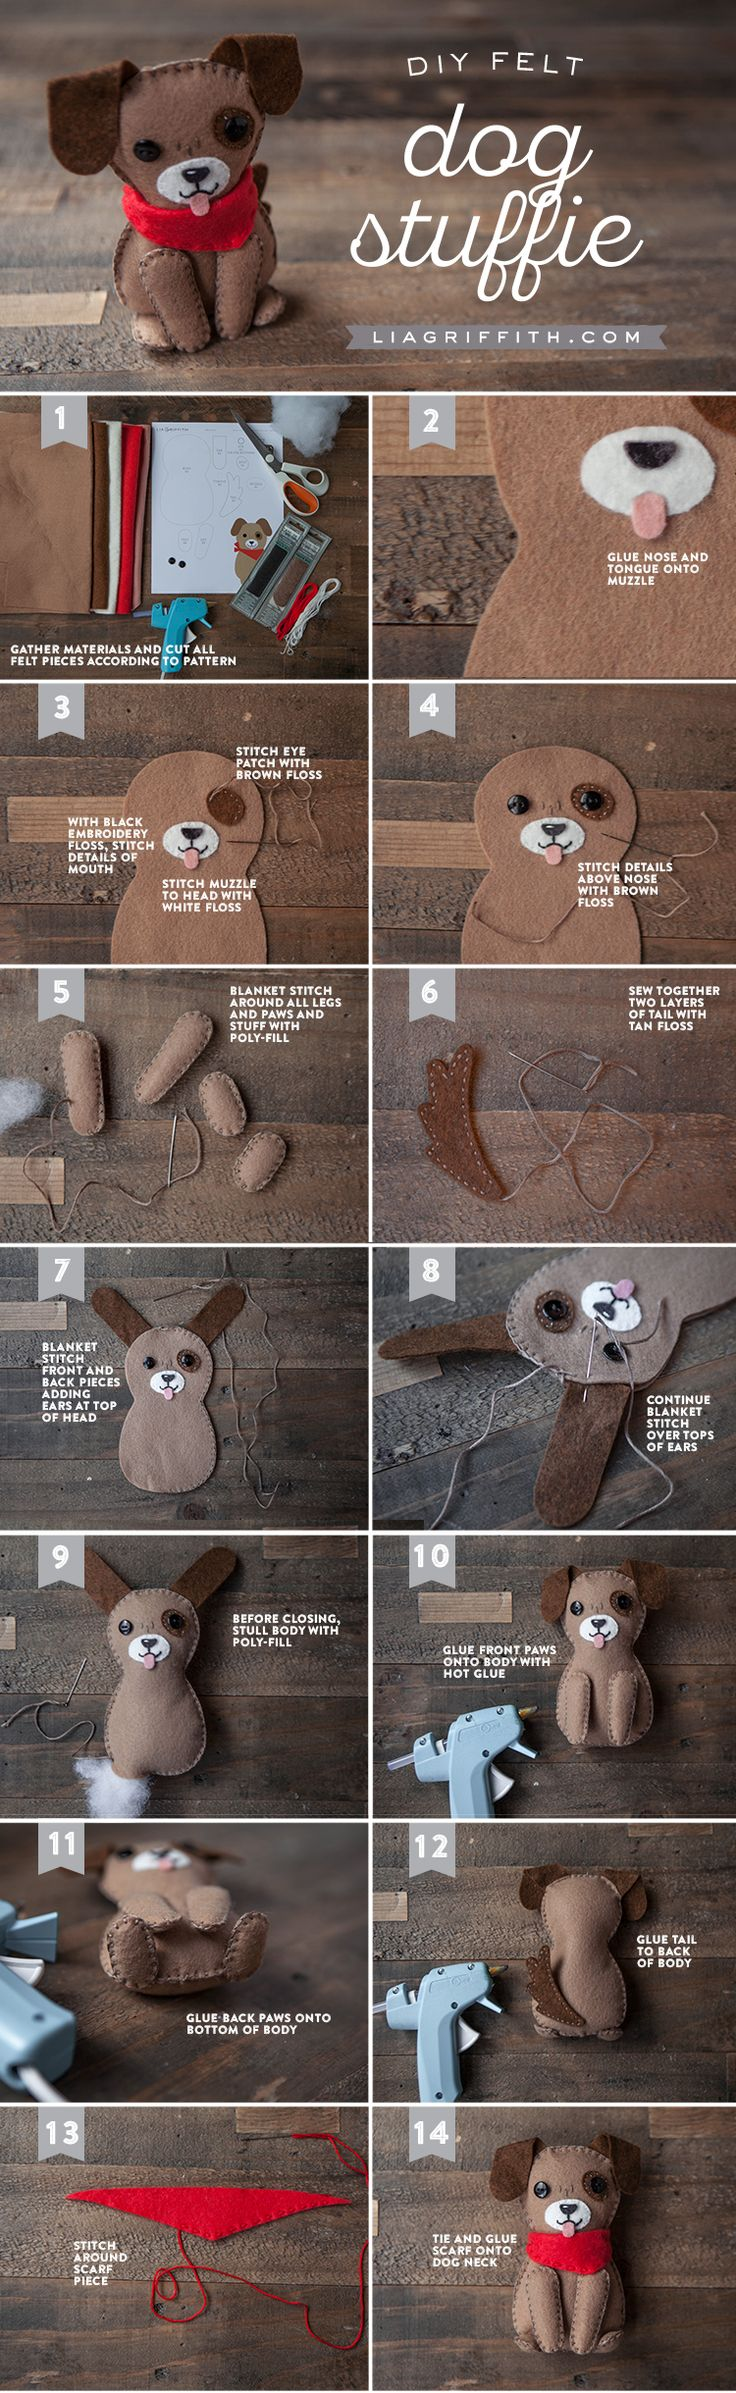 Woof! Want to make the cutest stuffed dog you ever did see? Downloadable pattern…